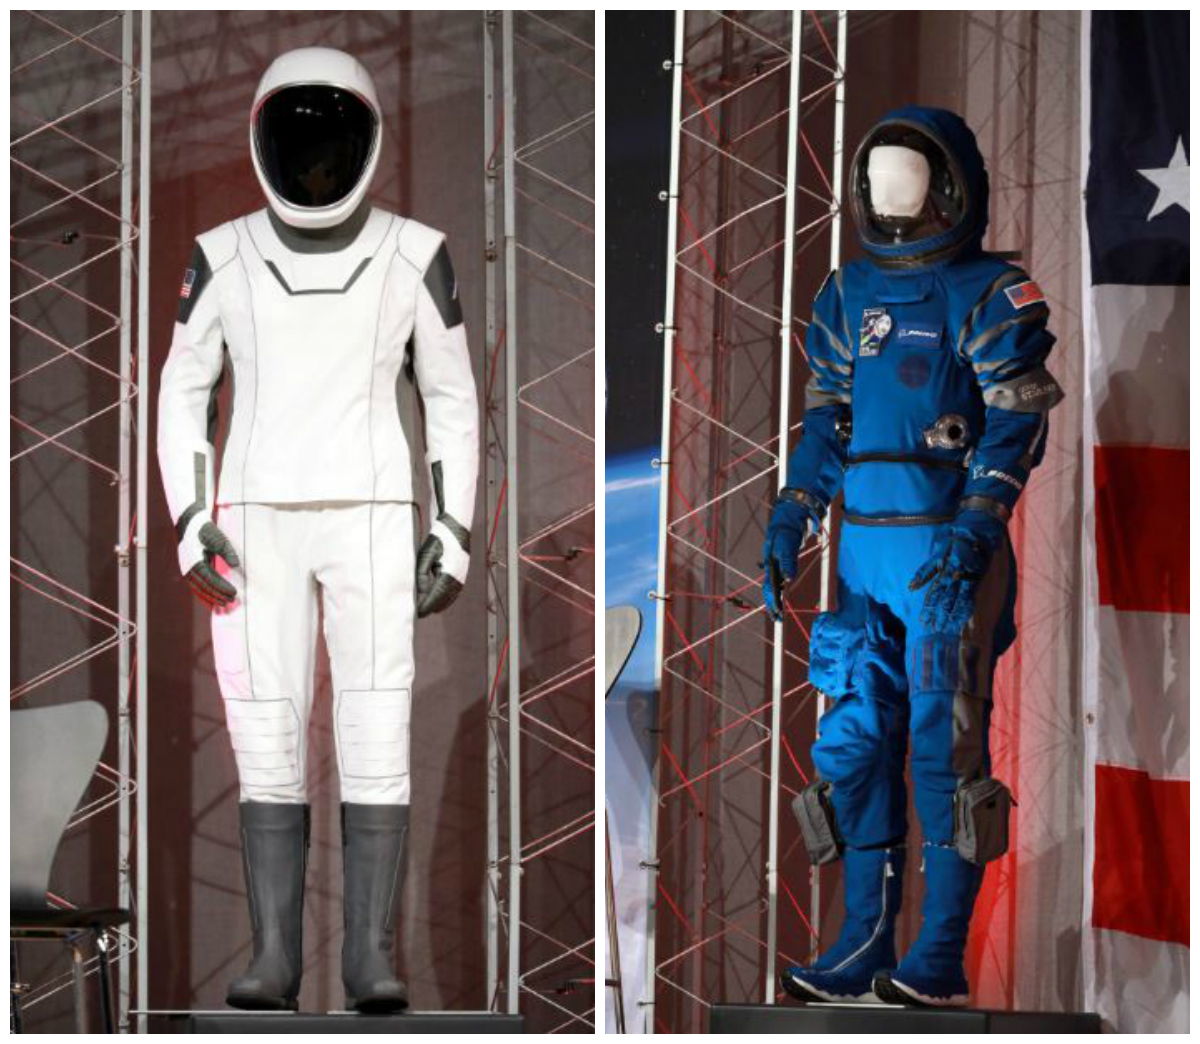 The new SpaceX and Boeing launch and entry spacesuits are displayed as NASA announces the crew assignments for the first flight tests missions of the Boeing CST-100 Starliner and SpaceX Crew Dragon at NASA's Johnson Space Center in Houston Texa